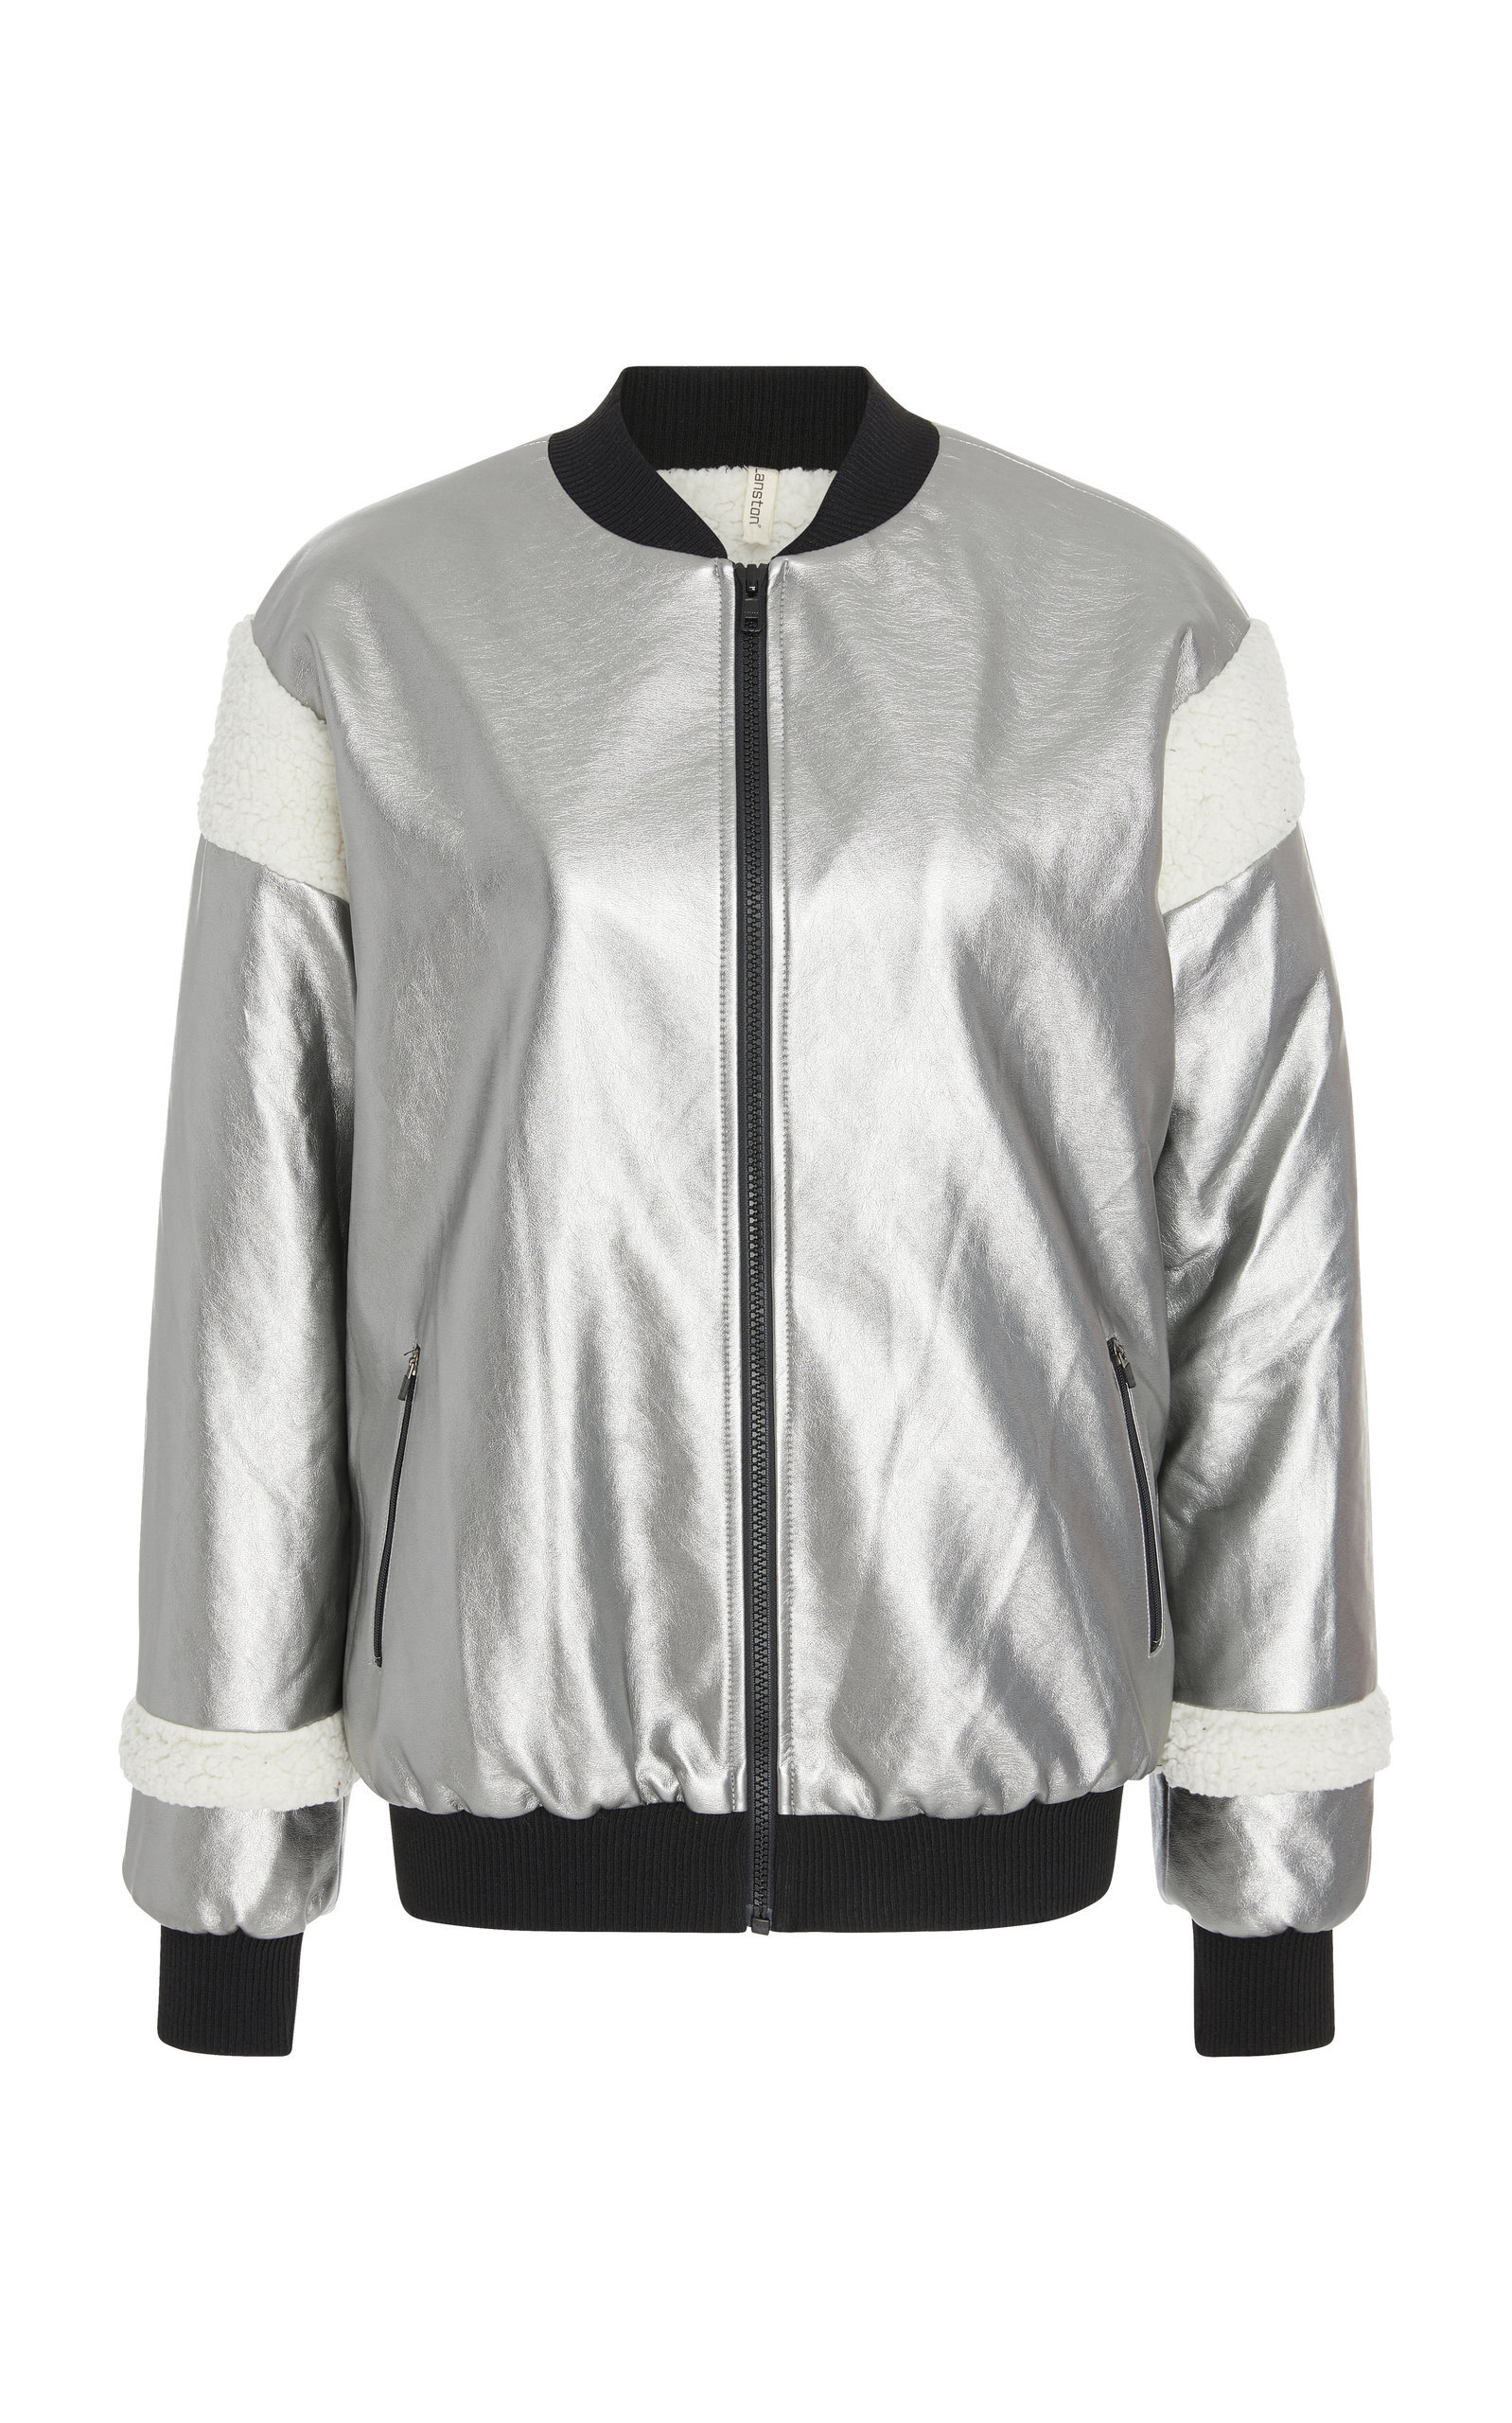 LANSTON PANELED METALLIC BOMBER JACKET